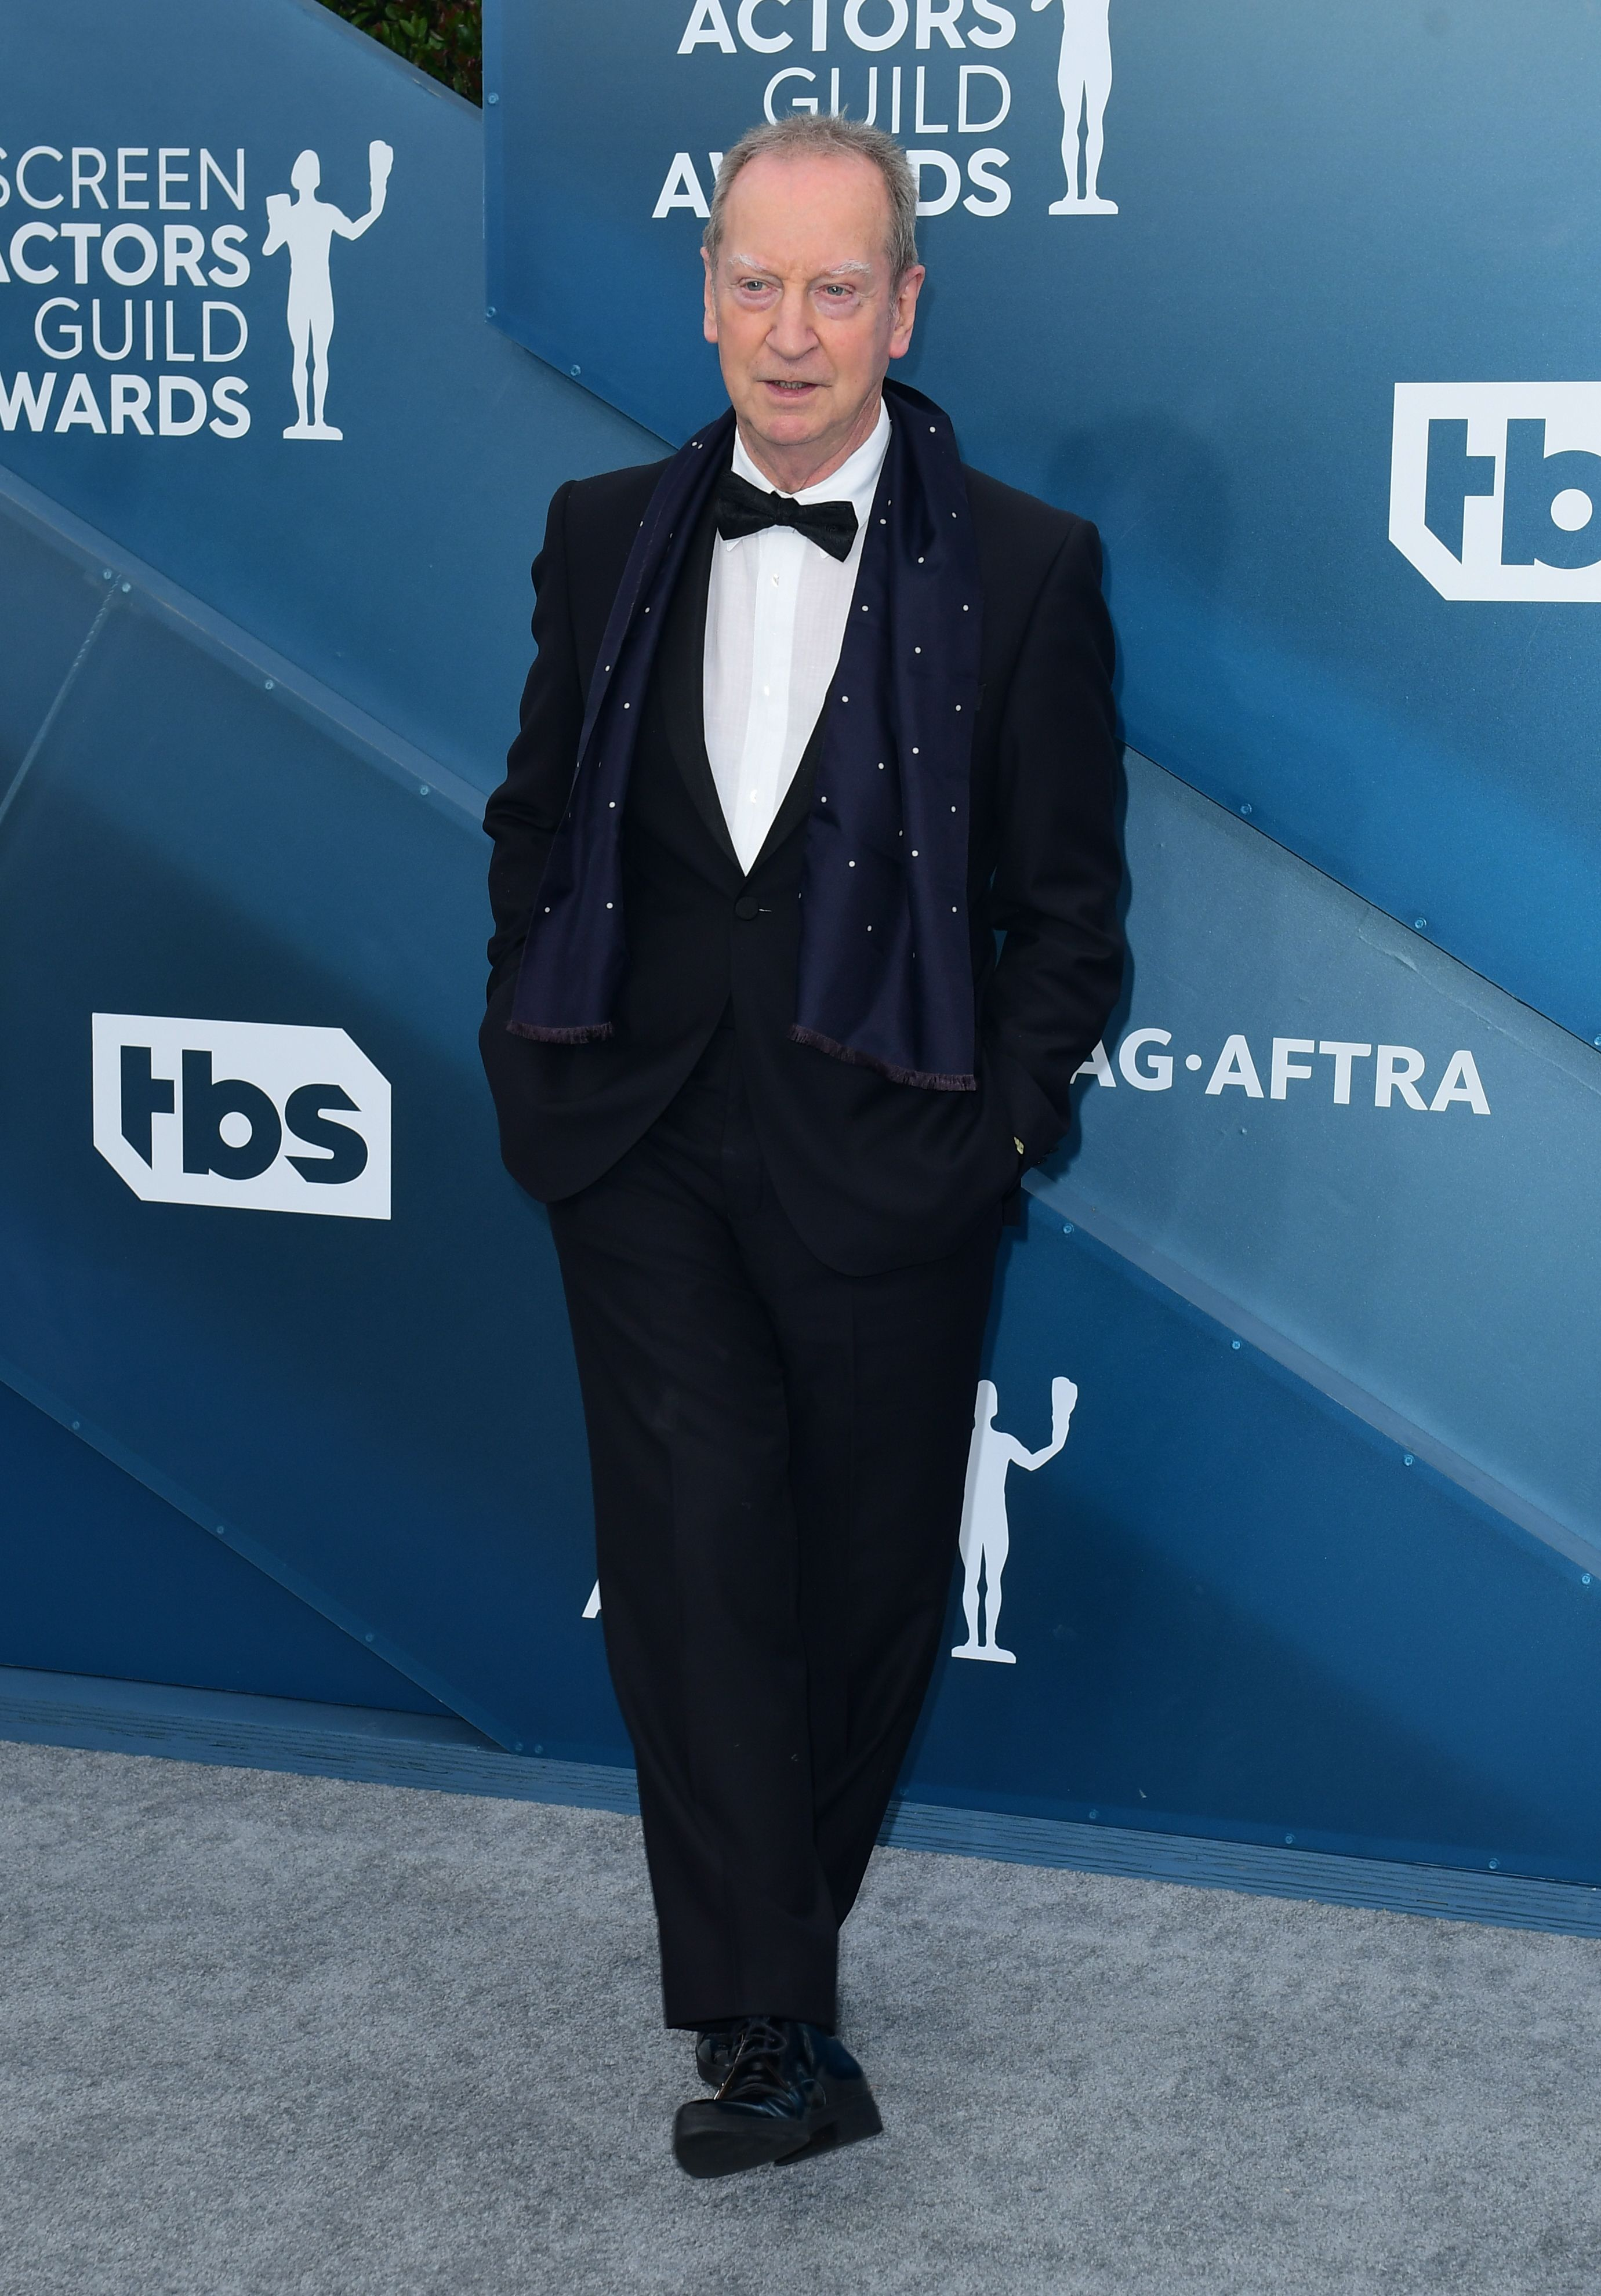 Actor Bill Paterson arrives for the 26th Annual Screen Actors Guild Awards at the Shrine Auditorium in Los Angeles on January 19, 2020. (Photo by FREDERIC J. BROWN / AFP) (Photo by FREDERIC J. BROWN/AFP via Getty Images)